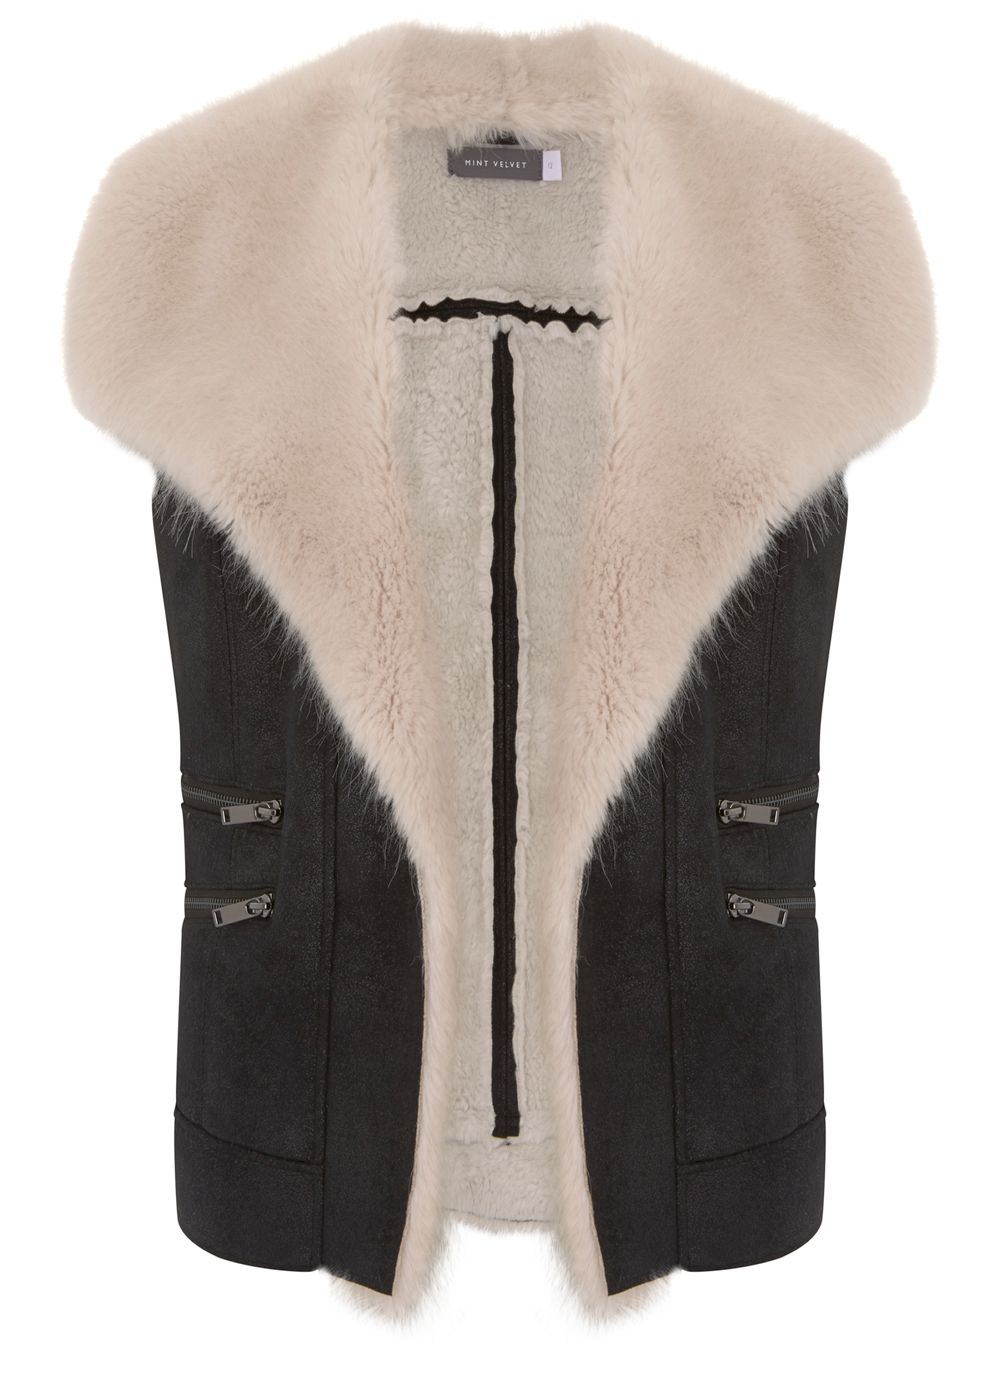 Mint Velvet Black & Cream Faux Fur Gilet, Black